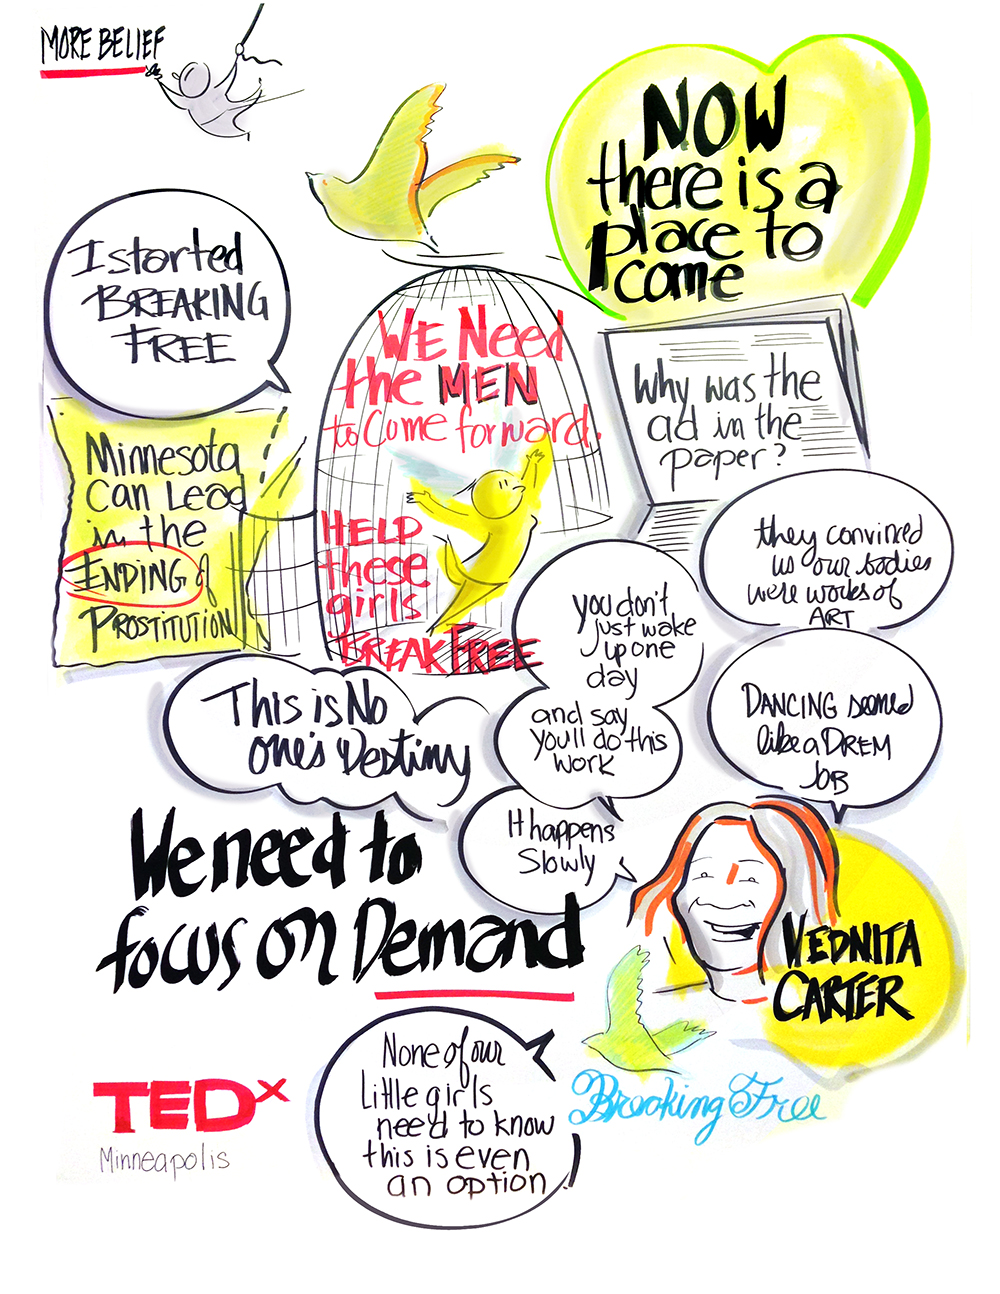 Copy of TED X 2016 Graphic Recording image | MORE BELIEF